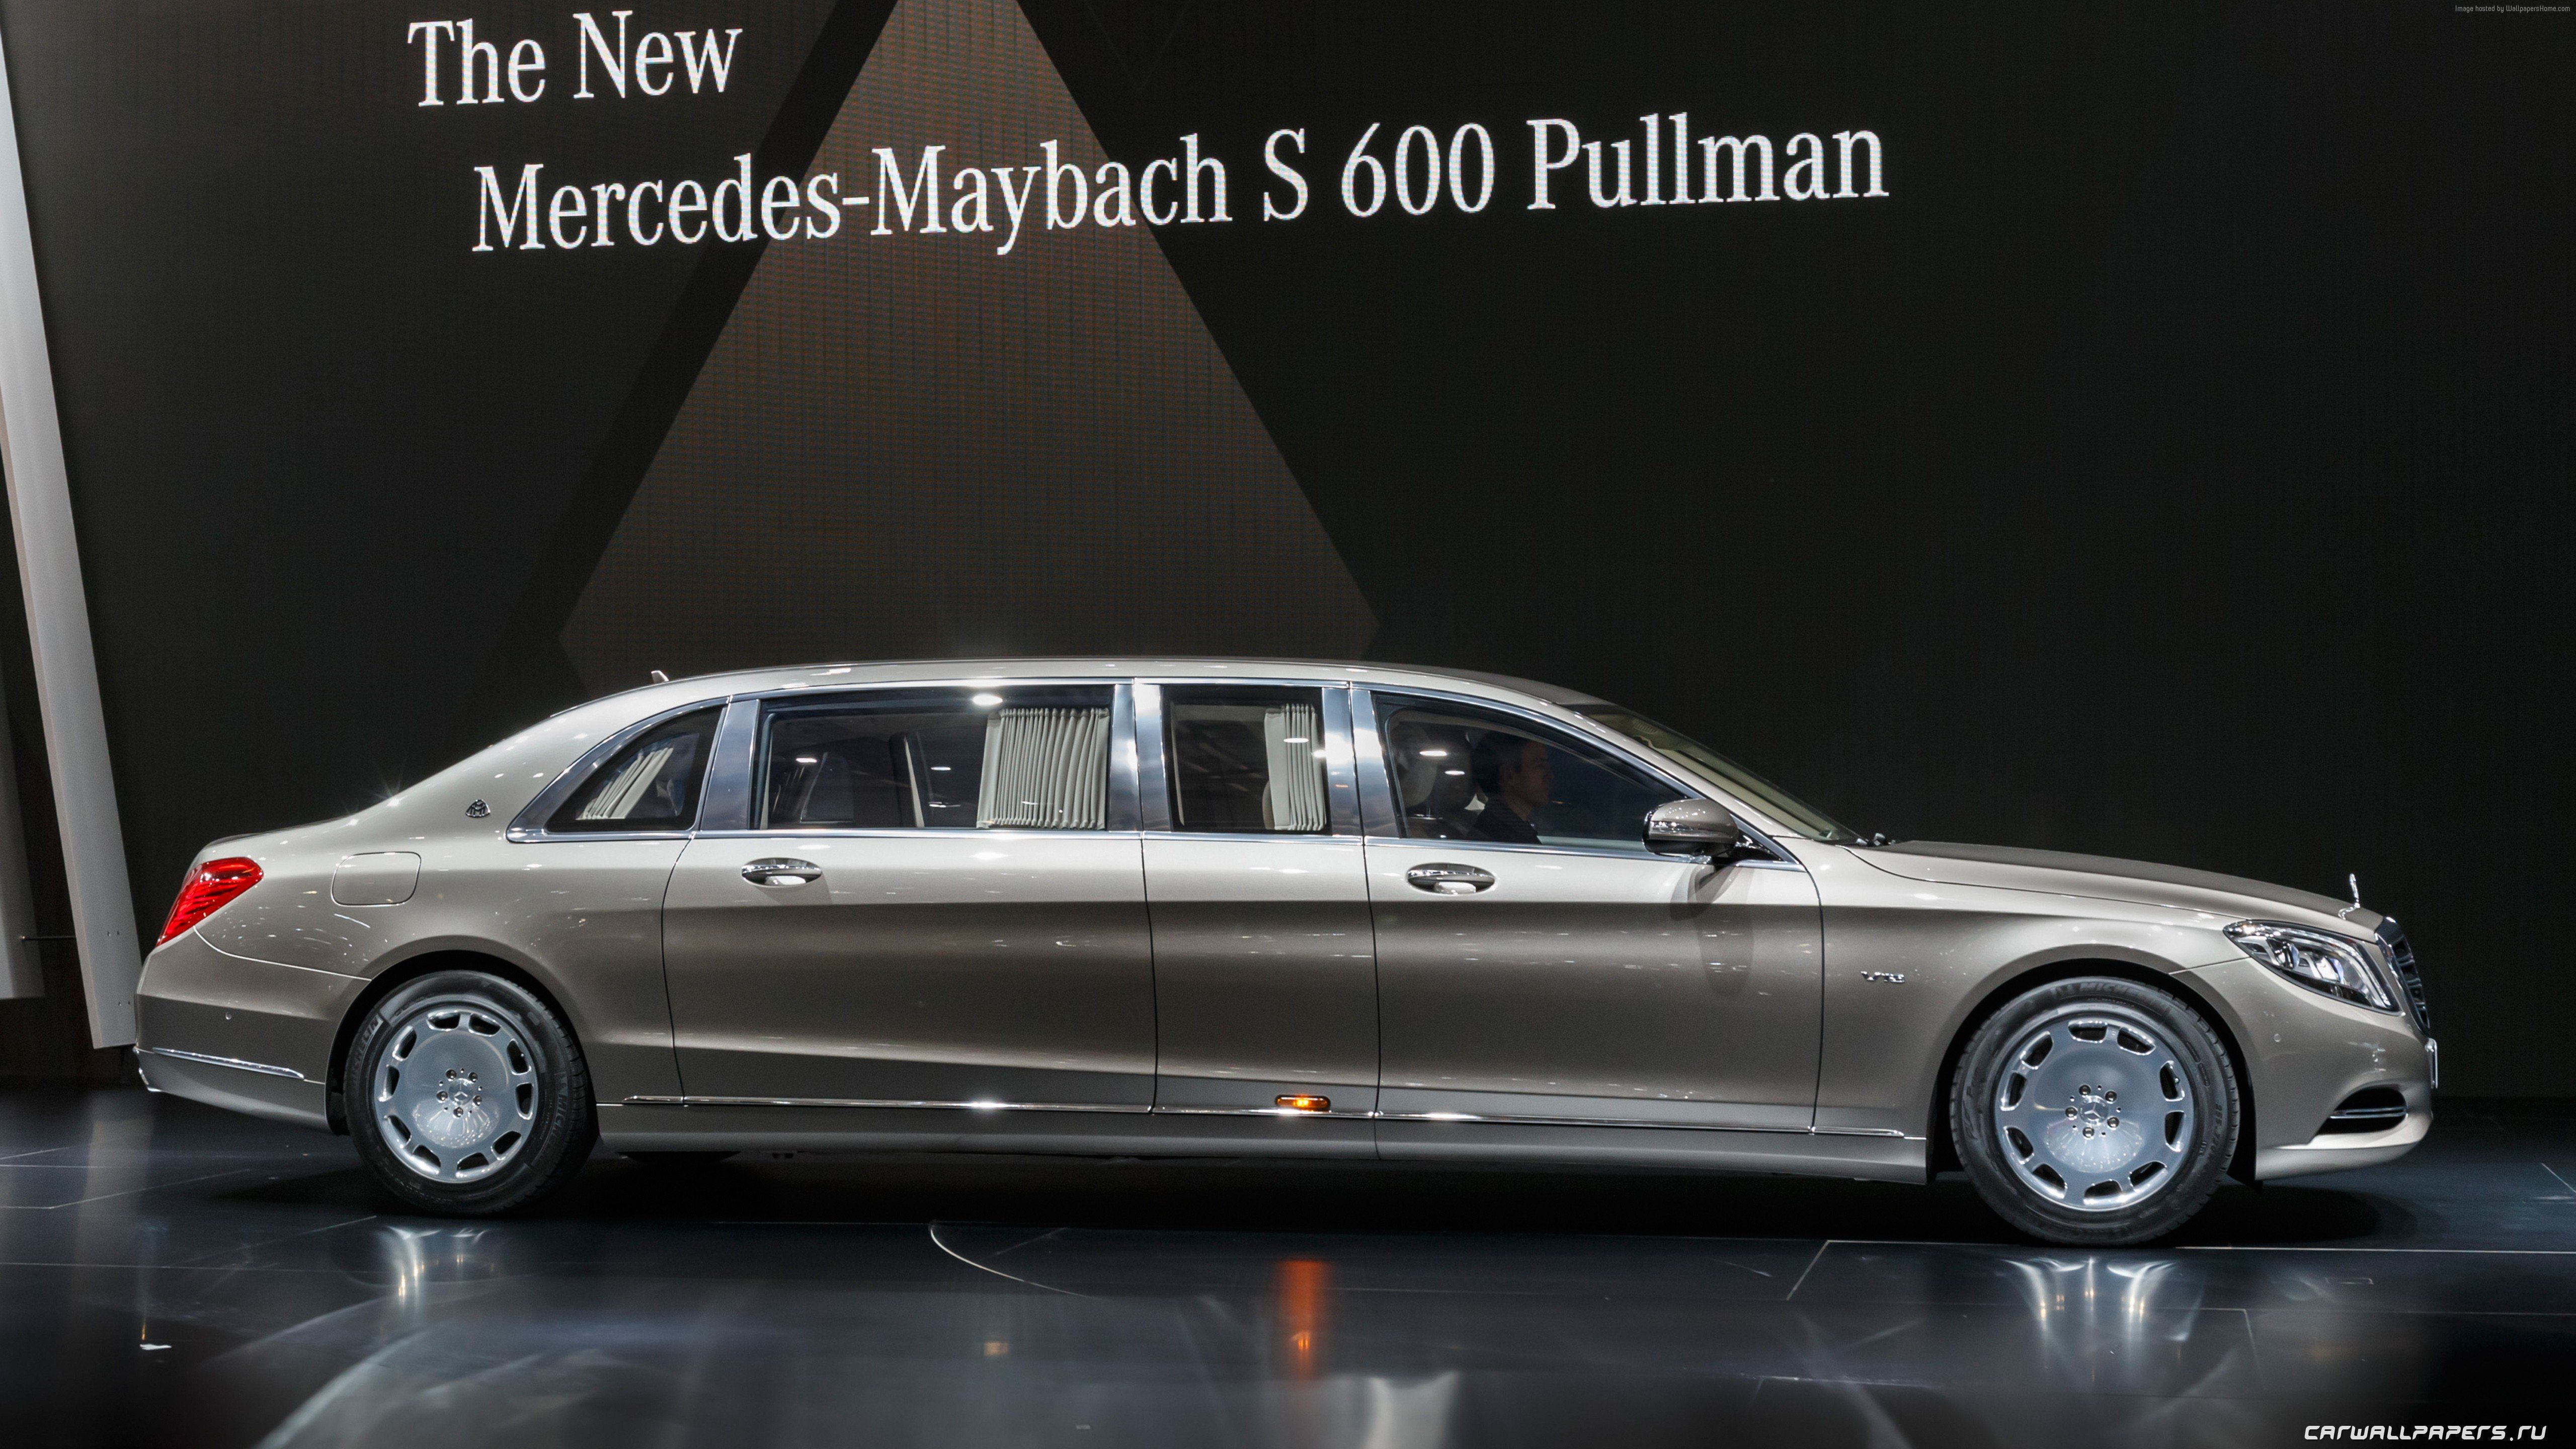 Wallpaper Mercedes Maybach S600 Pullman sedan grey 5120x2880